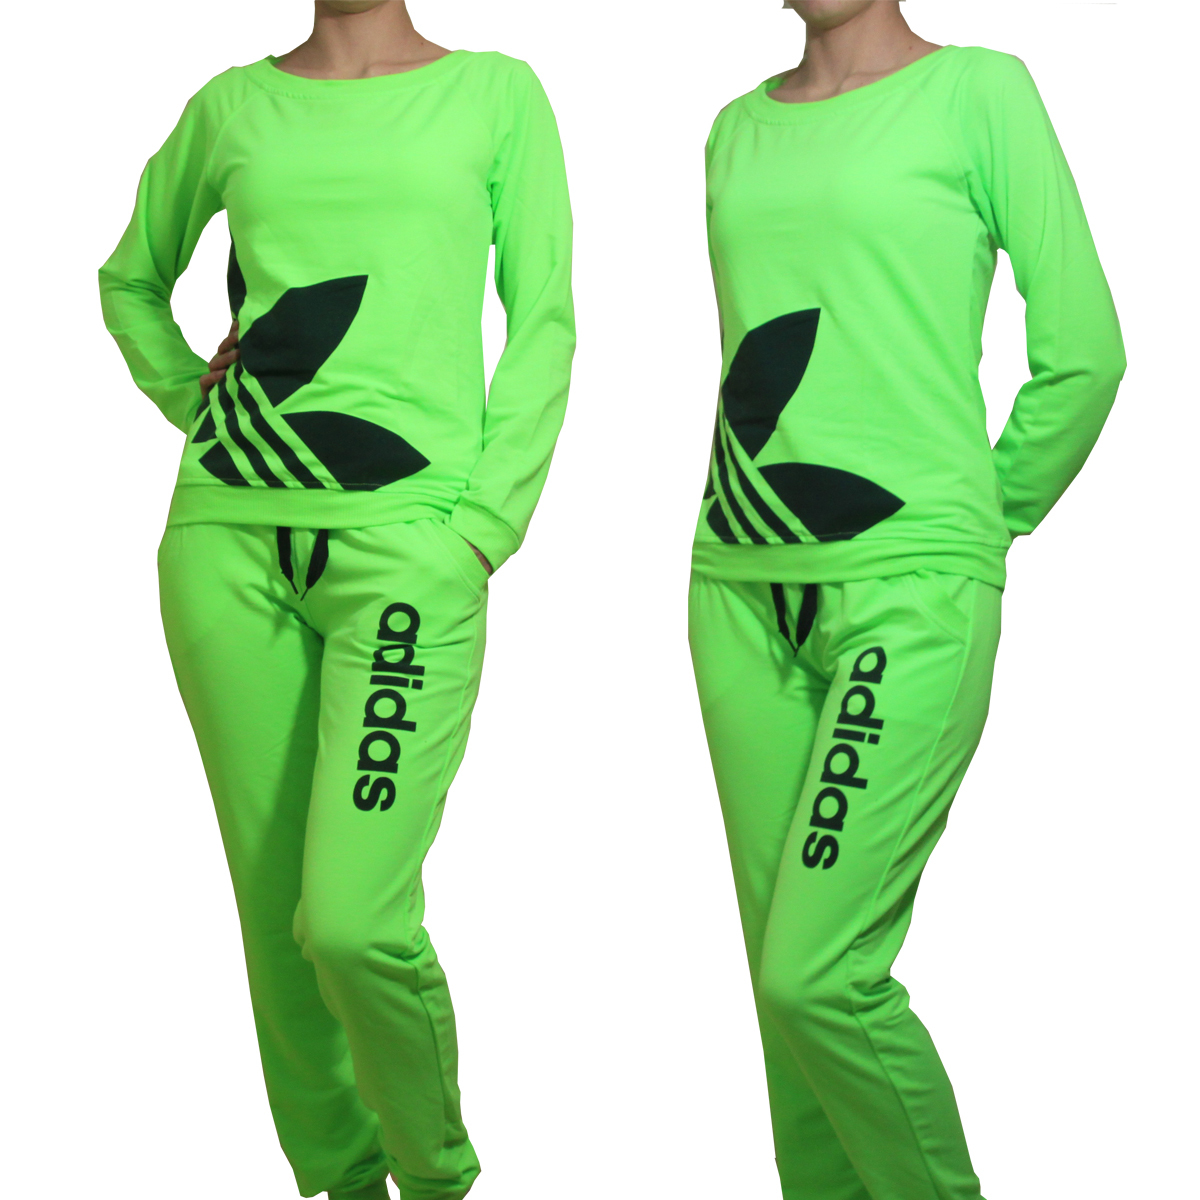 Adidas Neon Color Women Tracksuit Sweatsuit Neon GREEN ... 44954179bb